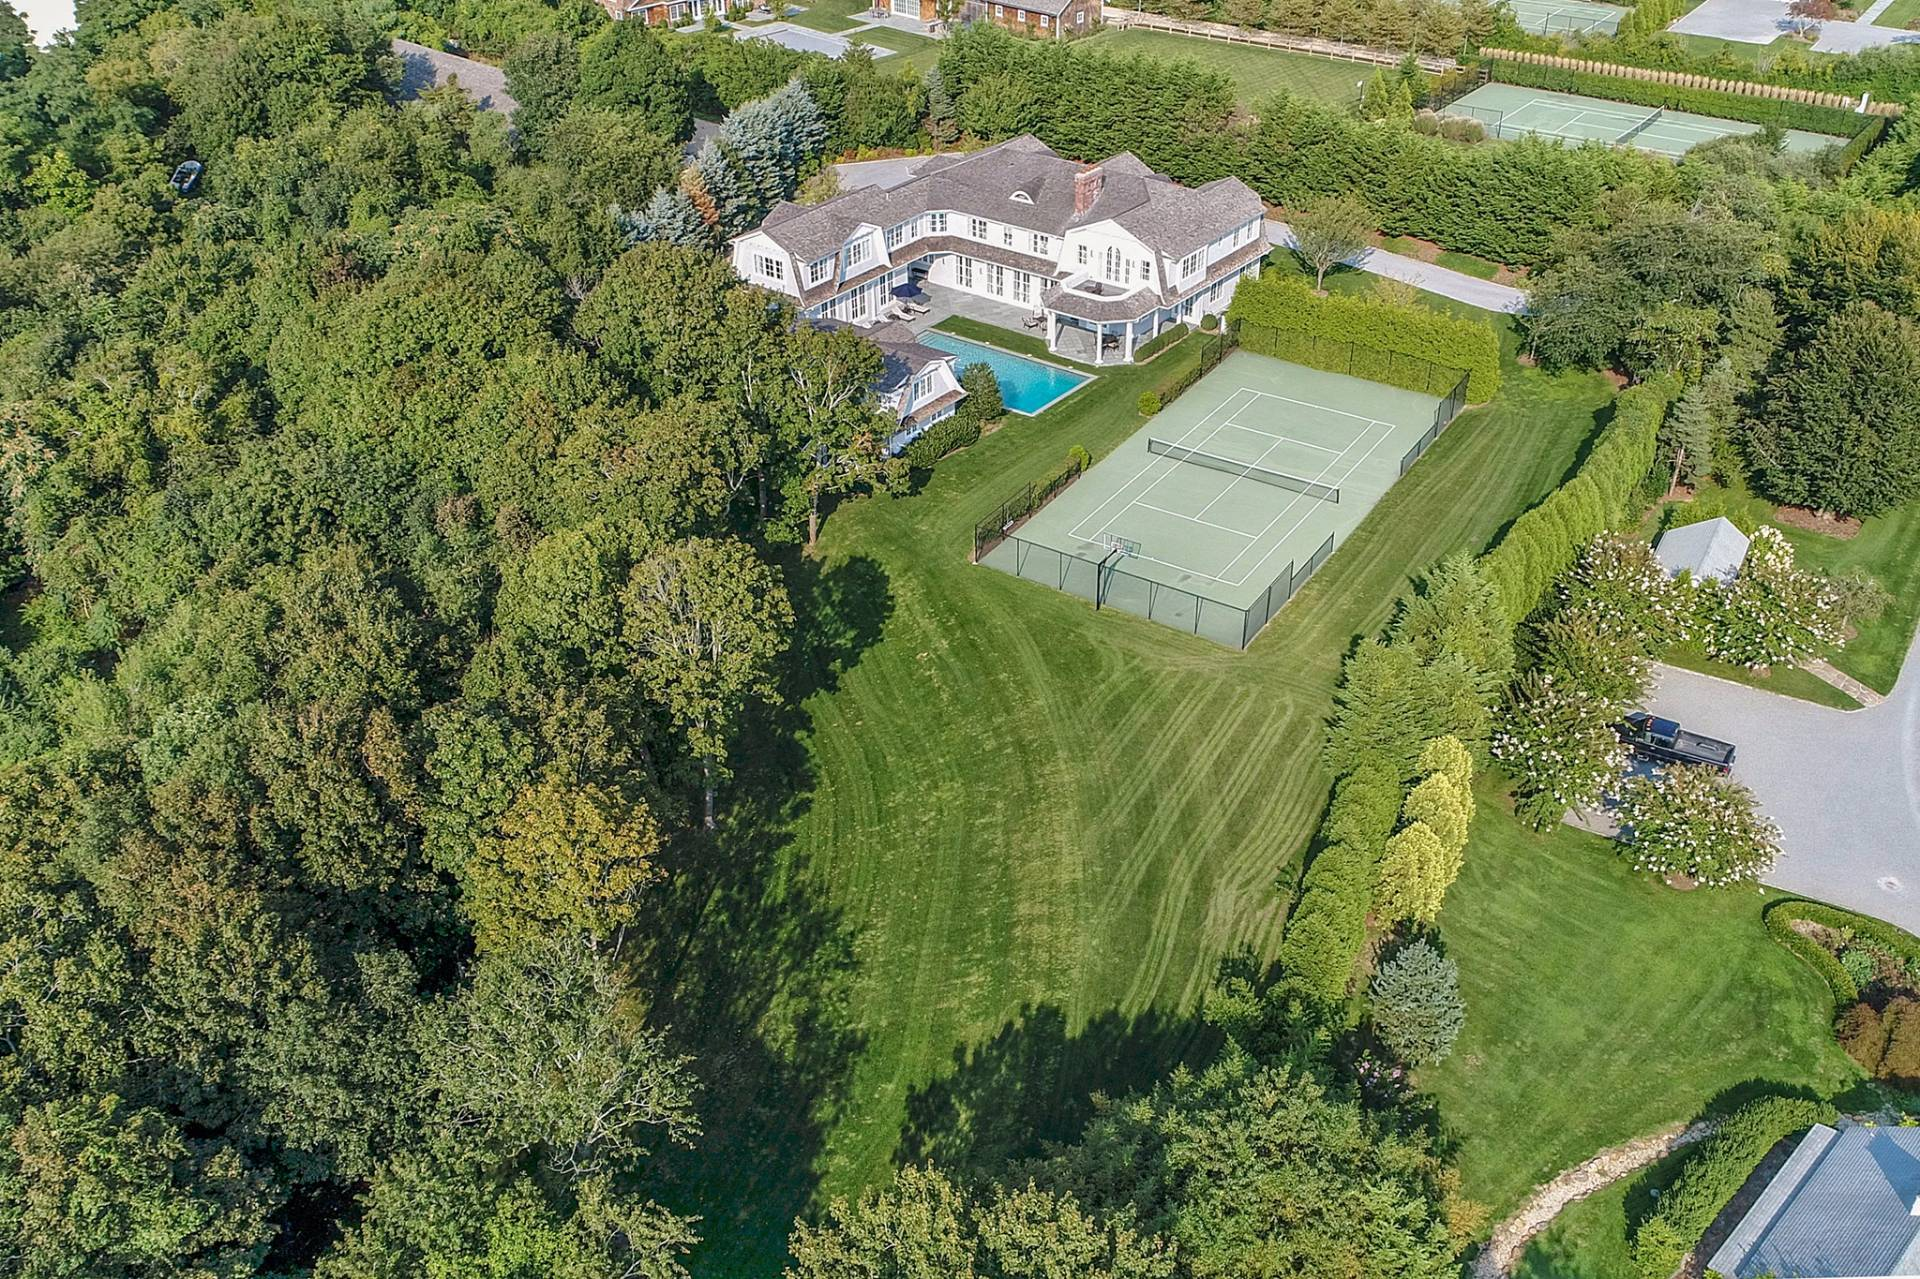 Single Family Home for Sale at Bridgehampton South With Tennis 106 Halsey Lane, Bridgehampton, New York